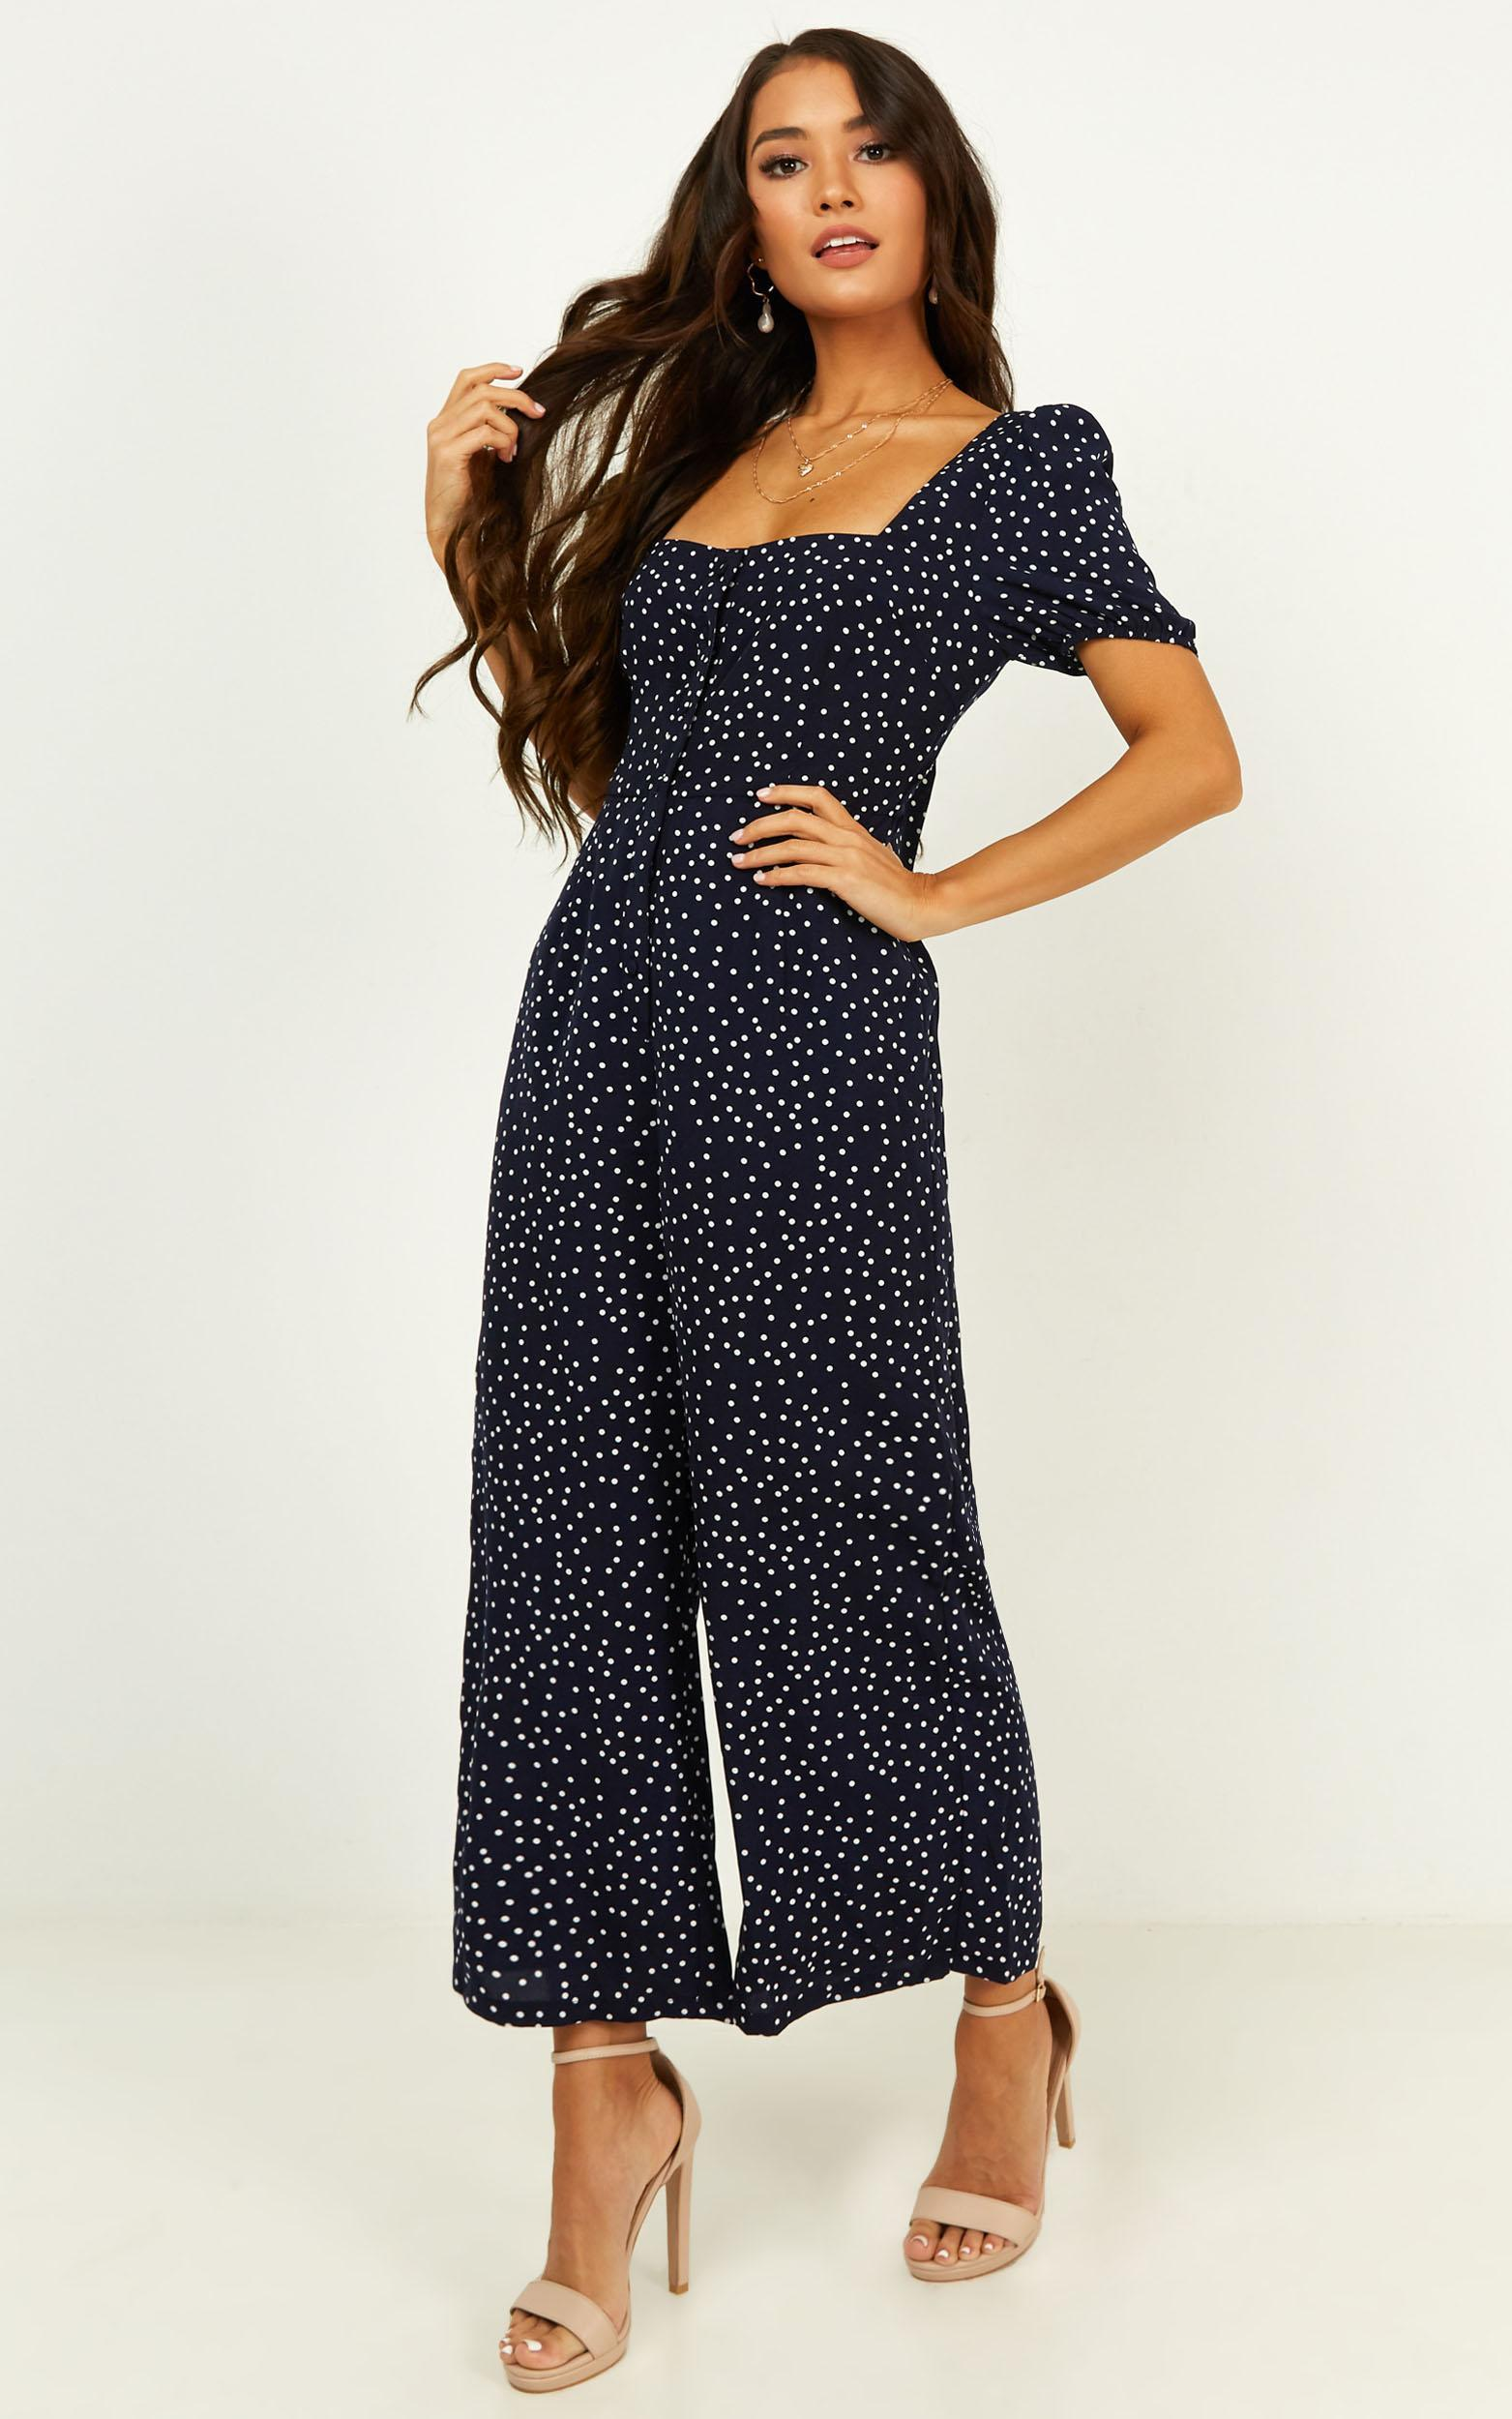 Clear Intentions Jumpsuit in navy spot - 12 (L), Navy, hi-res image number null